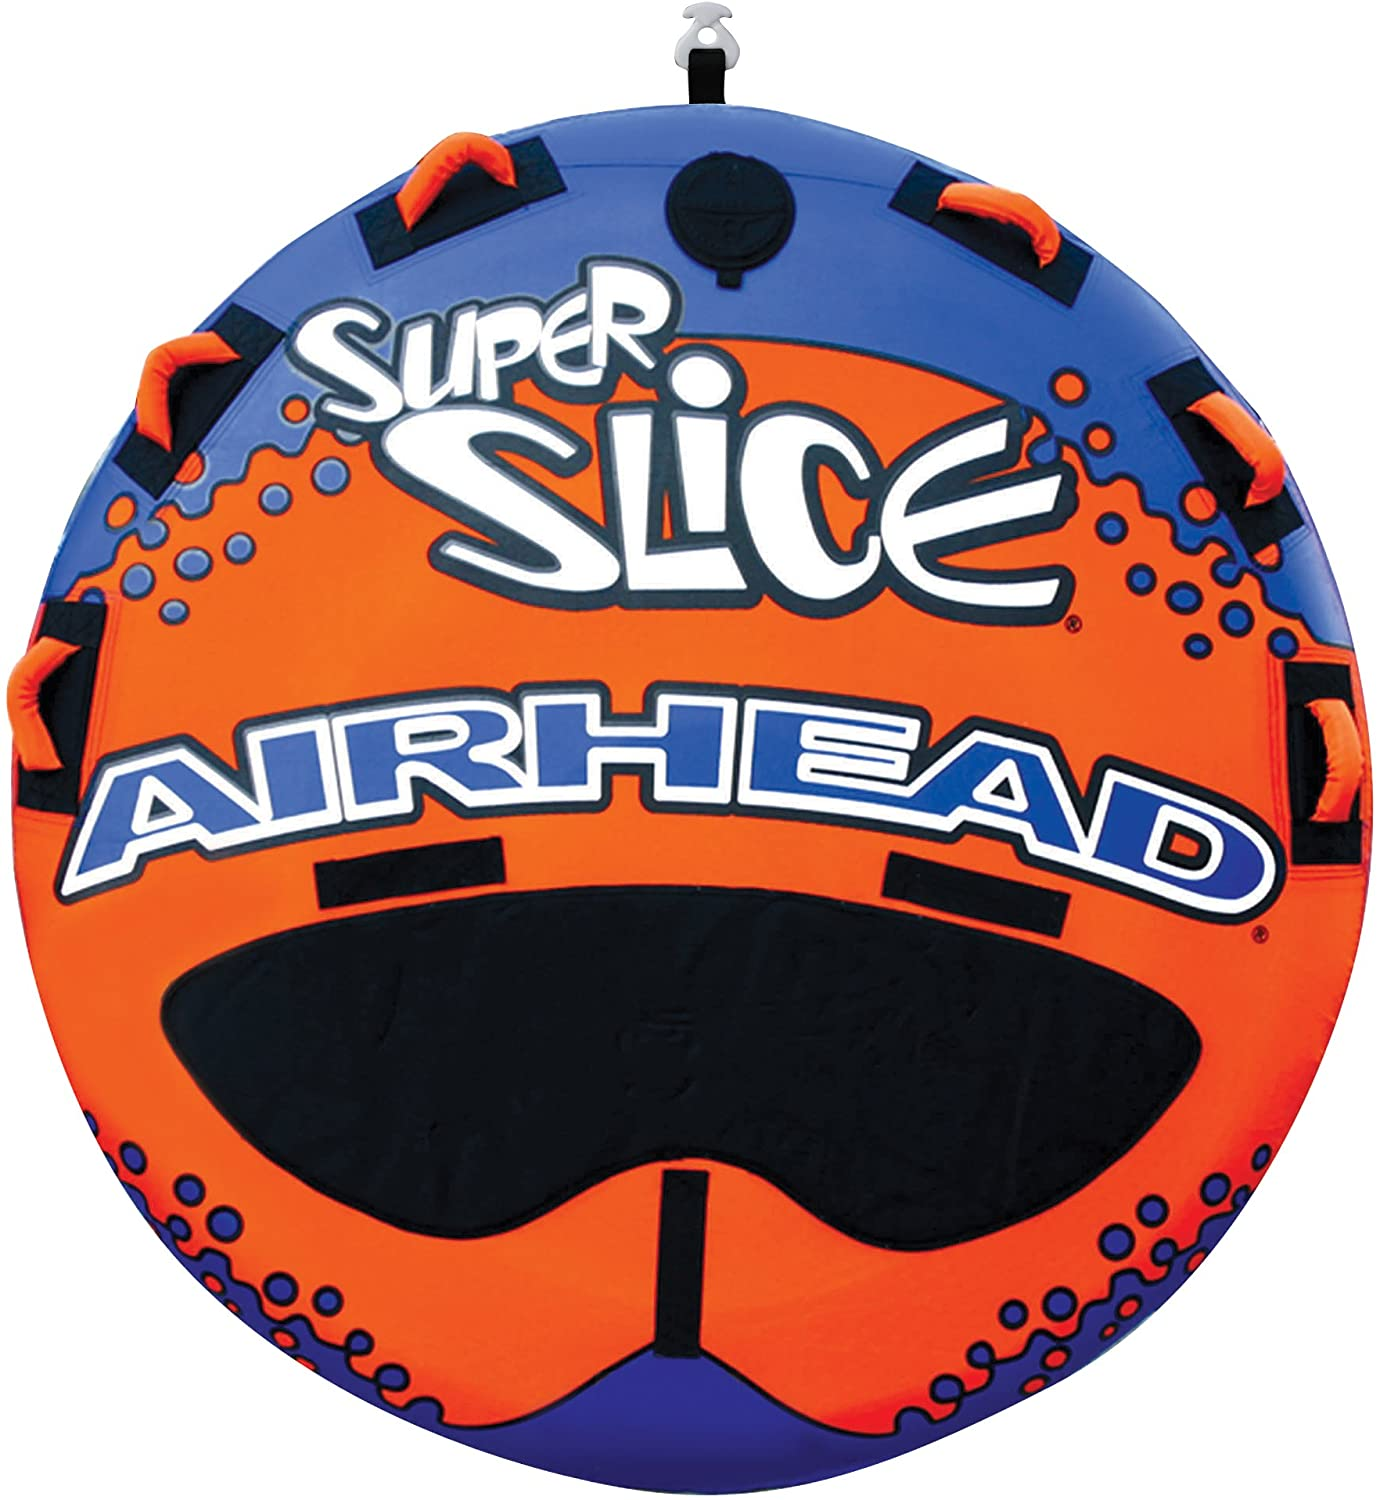 Airhead Super Slice| 1-3 Rider Towable Tube for Boating